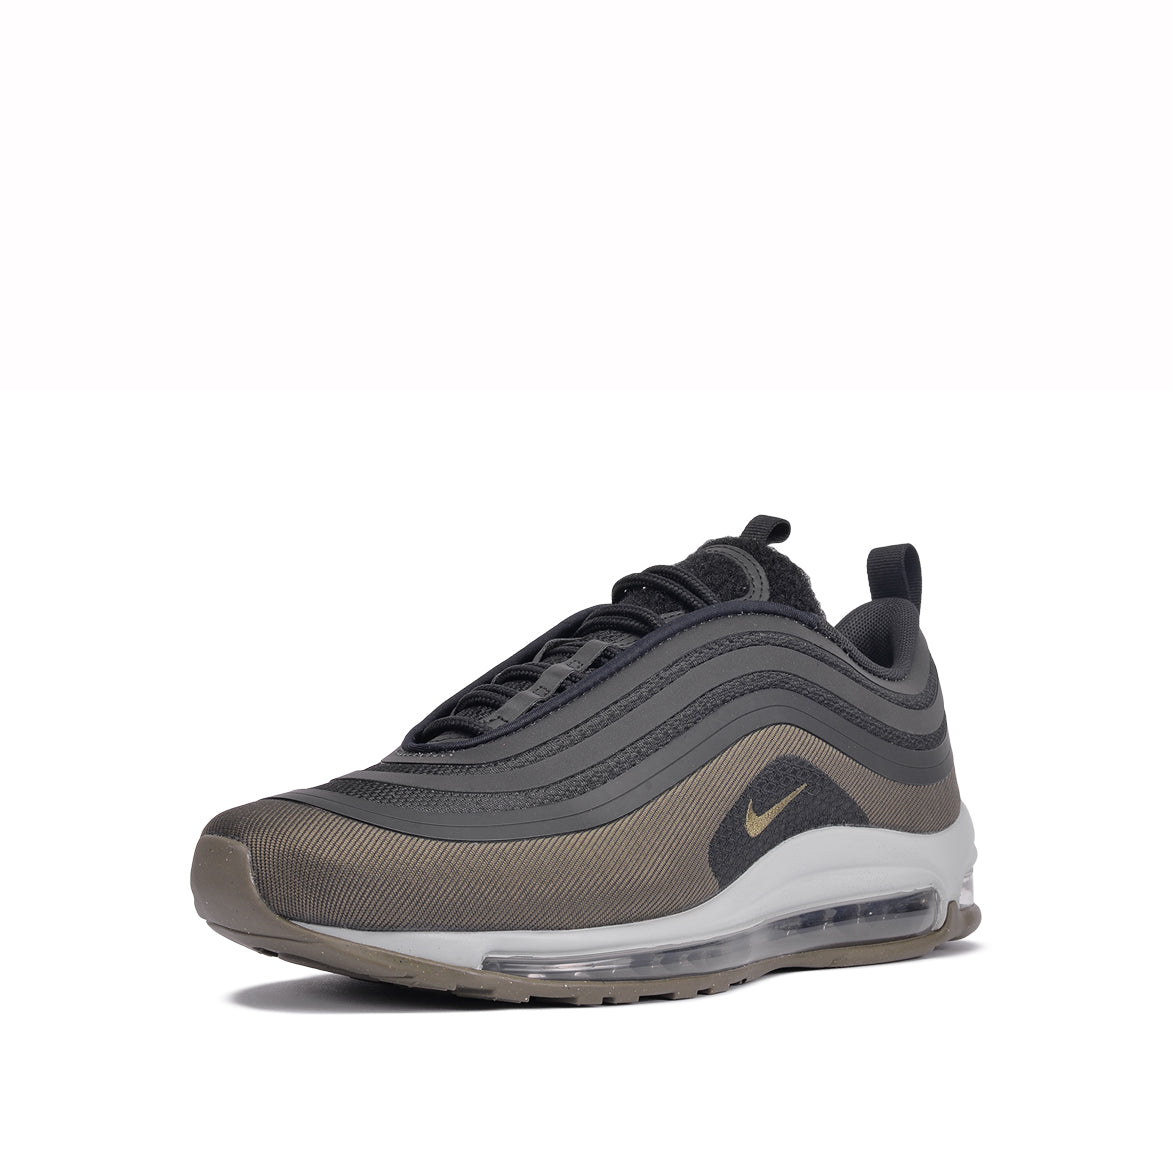 AIR MAX '97 ULTRA `17 HAL - BLACK / MEDIUM OLIVE